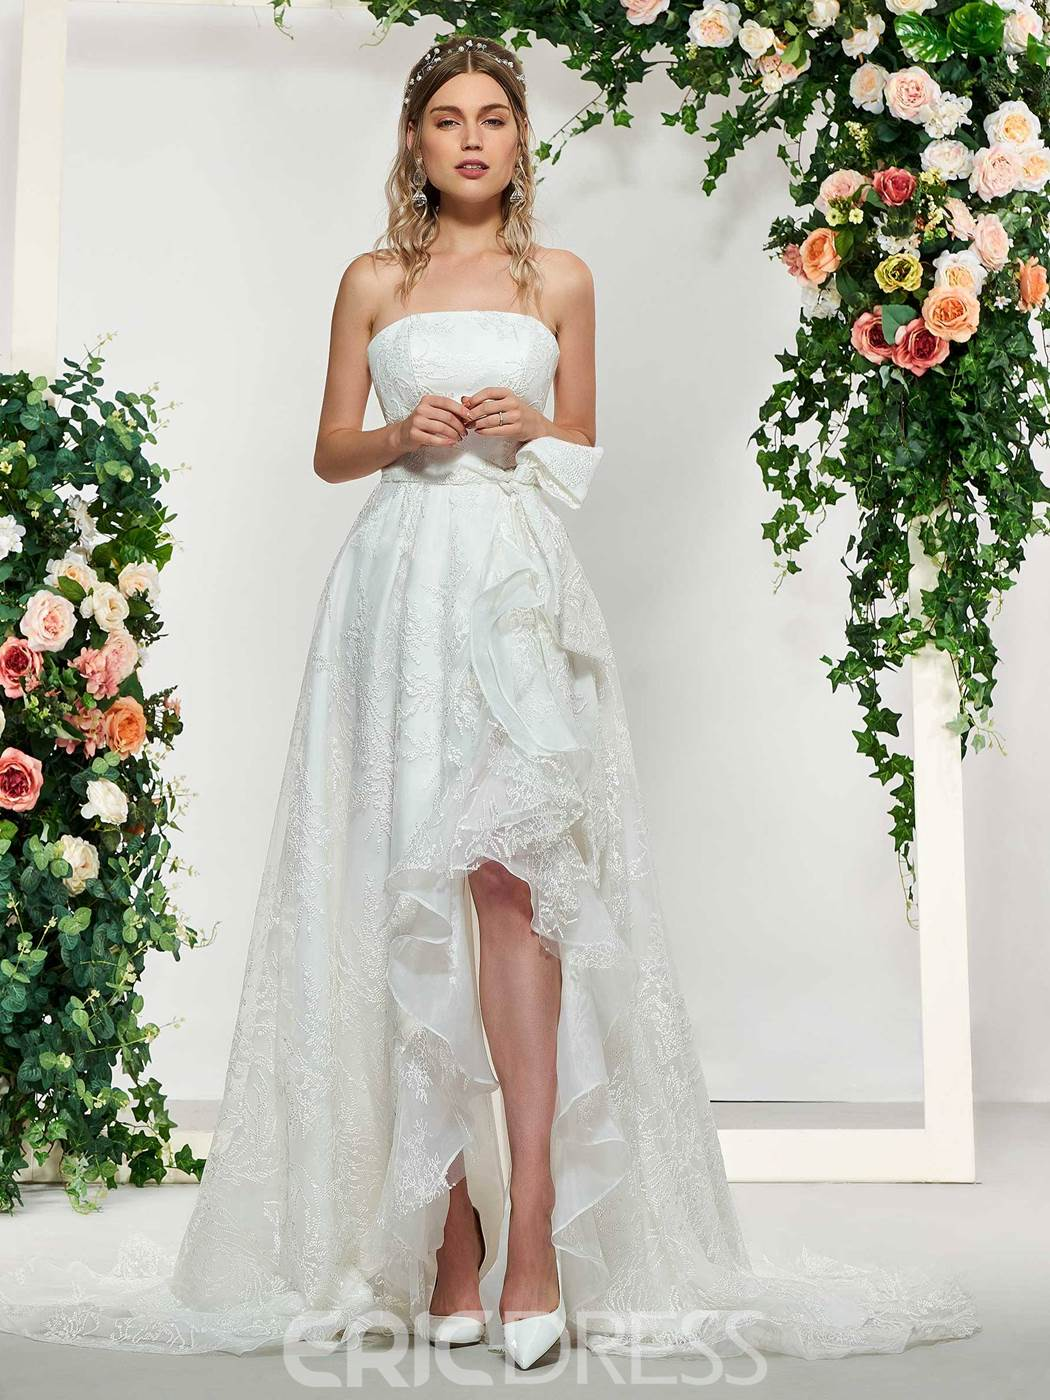 High low wedding dress with bow